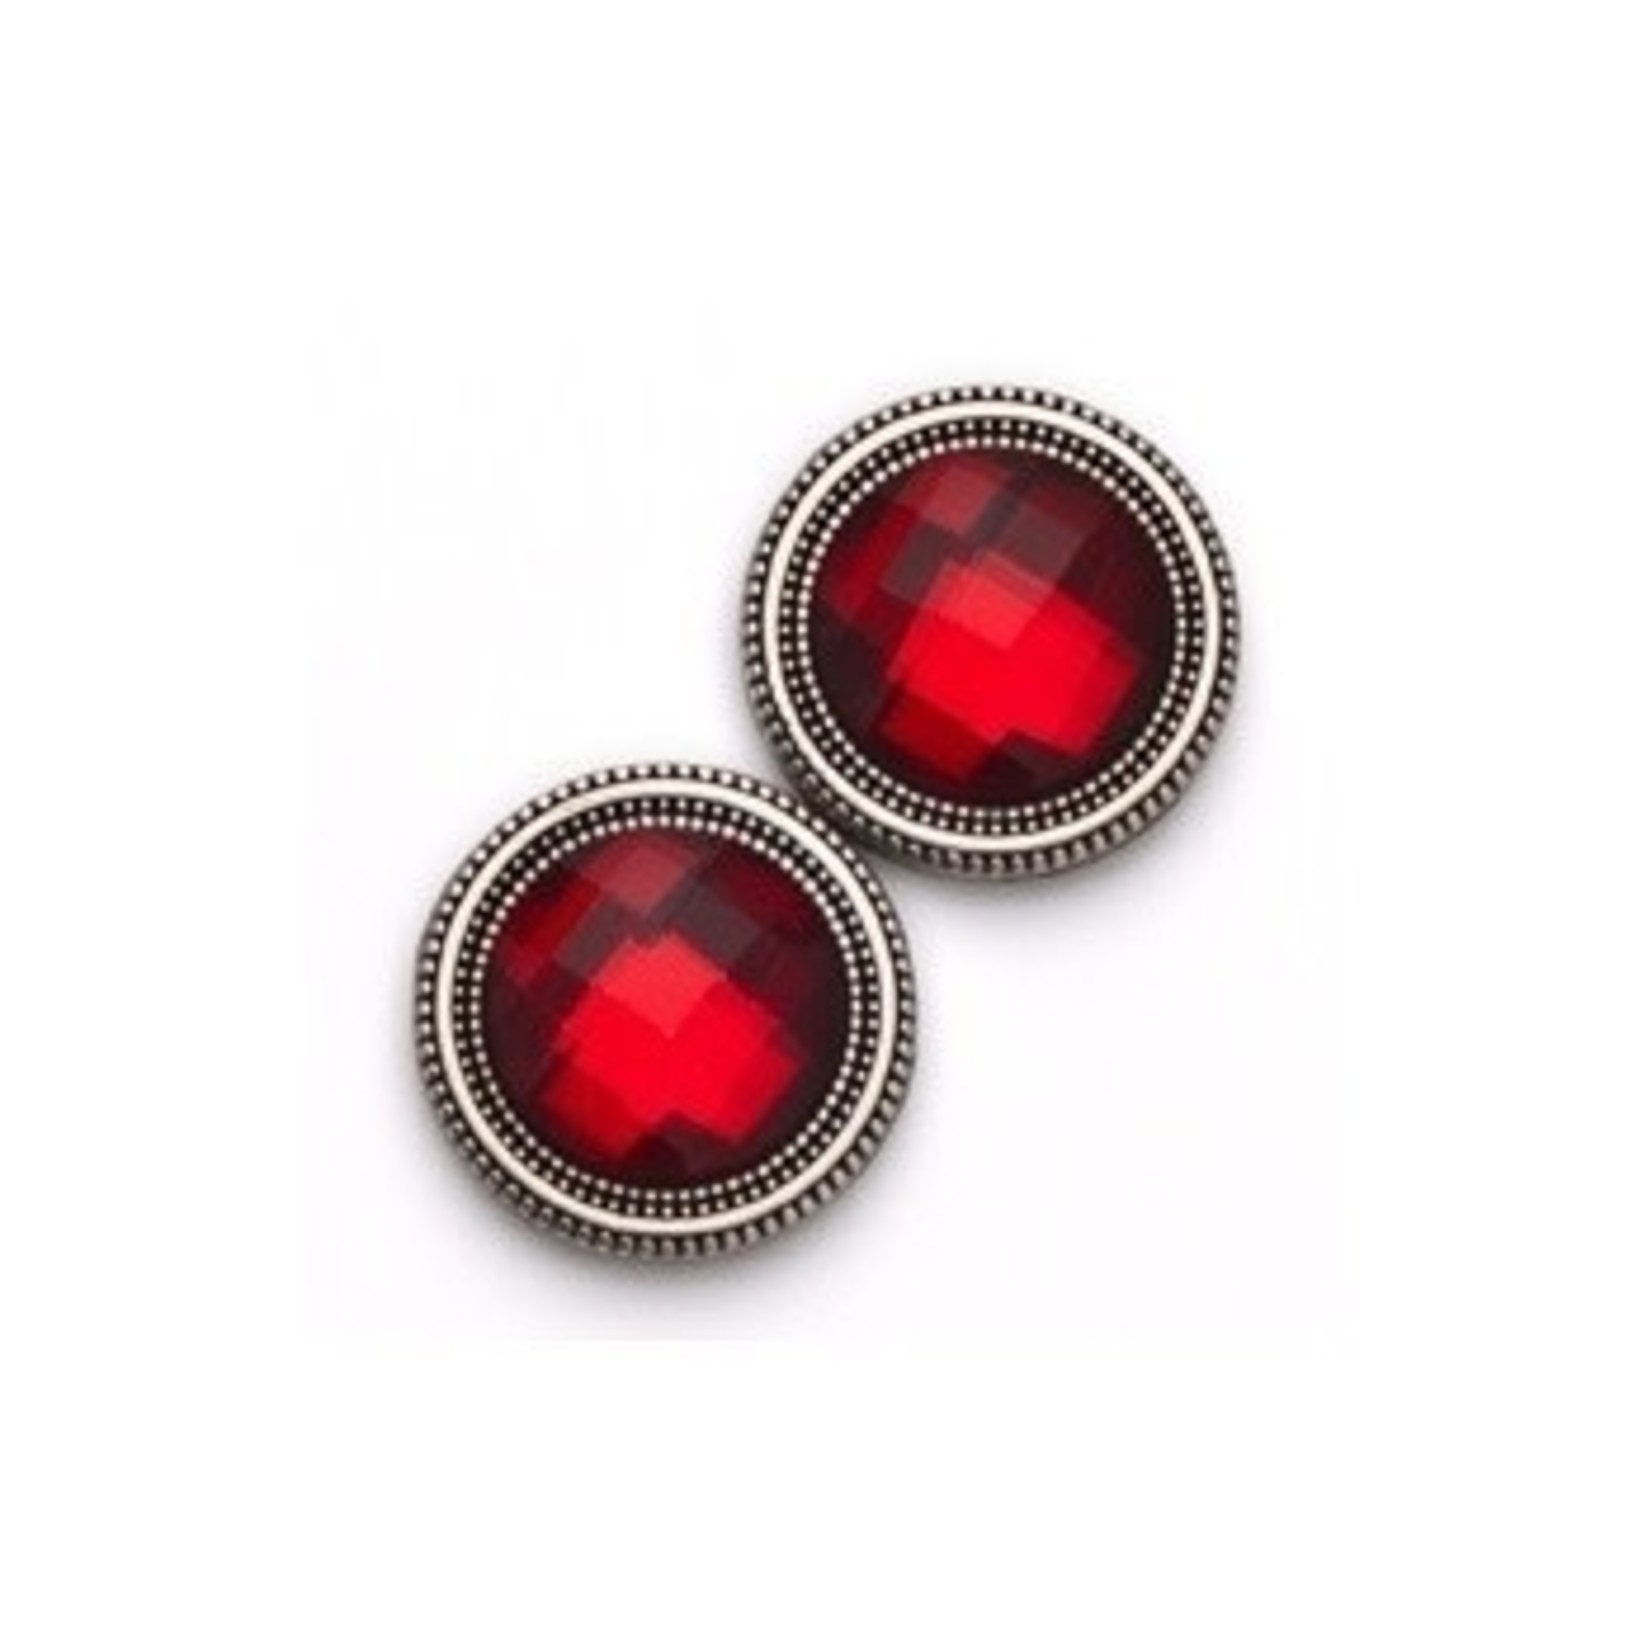 Magnebutton Red Crystal Closure